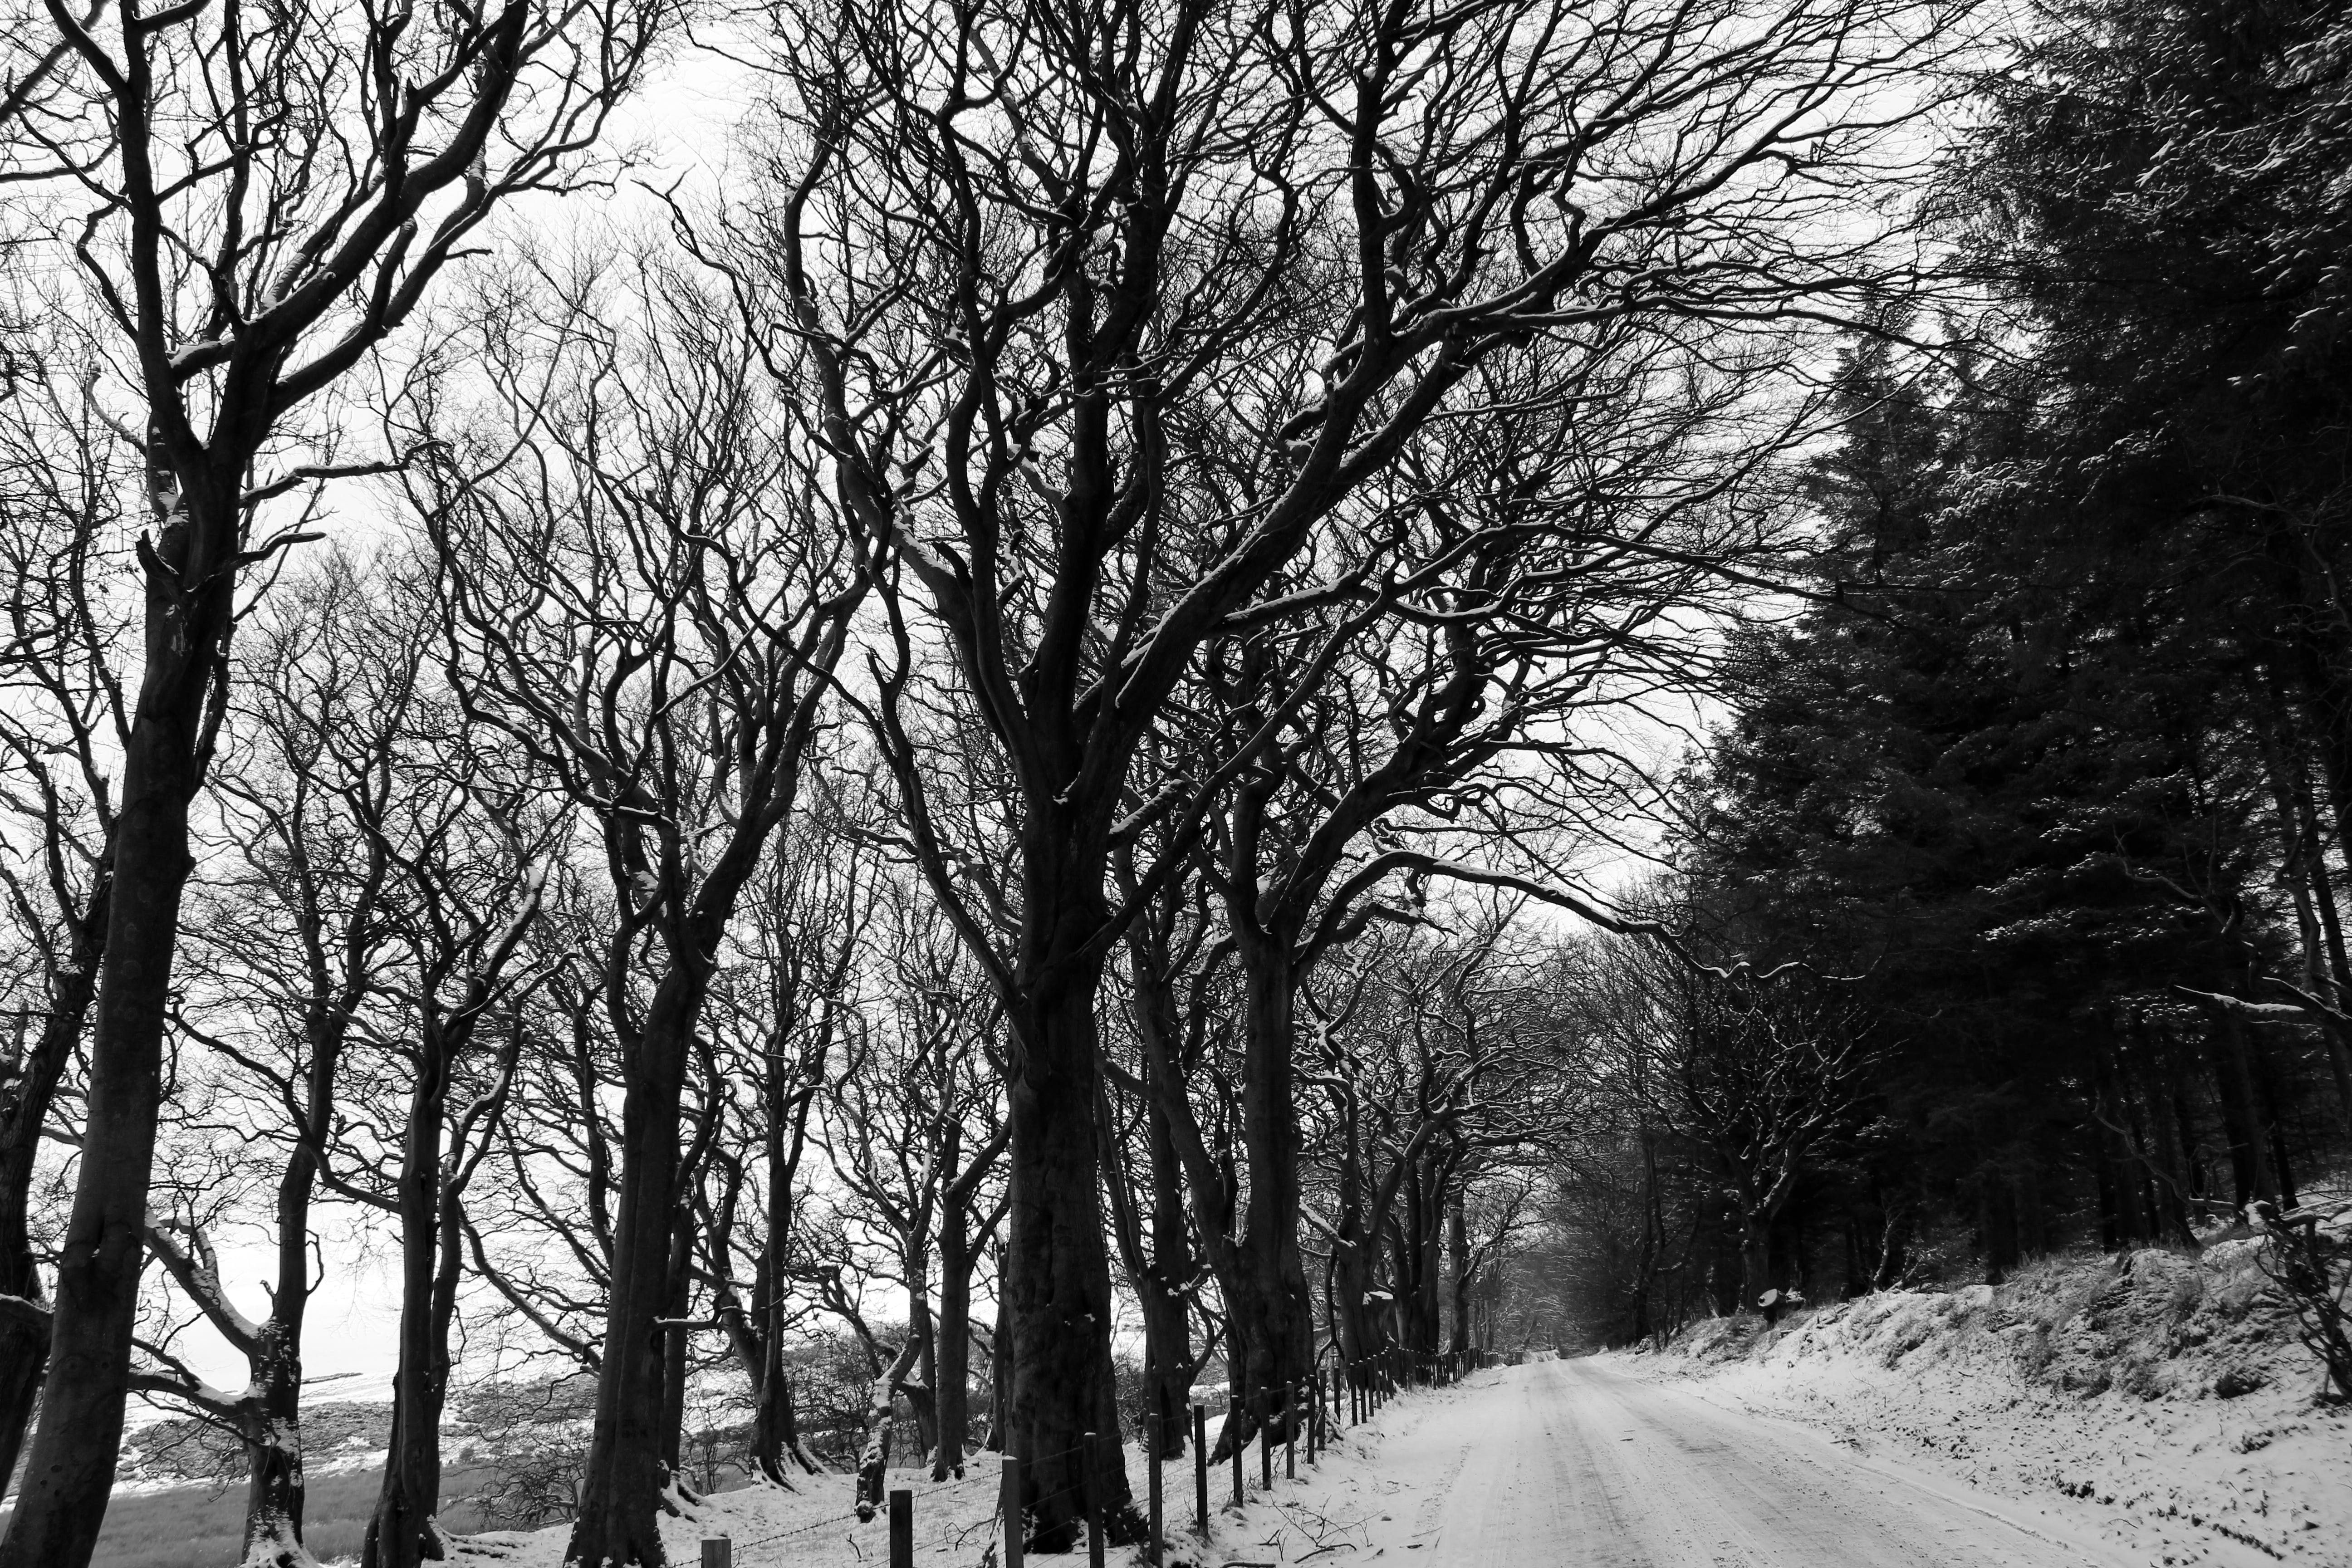 Grayscale Photography of Snow-covered Field and Bare Trees